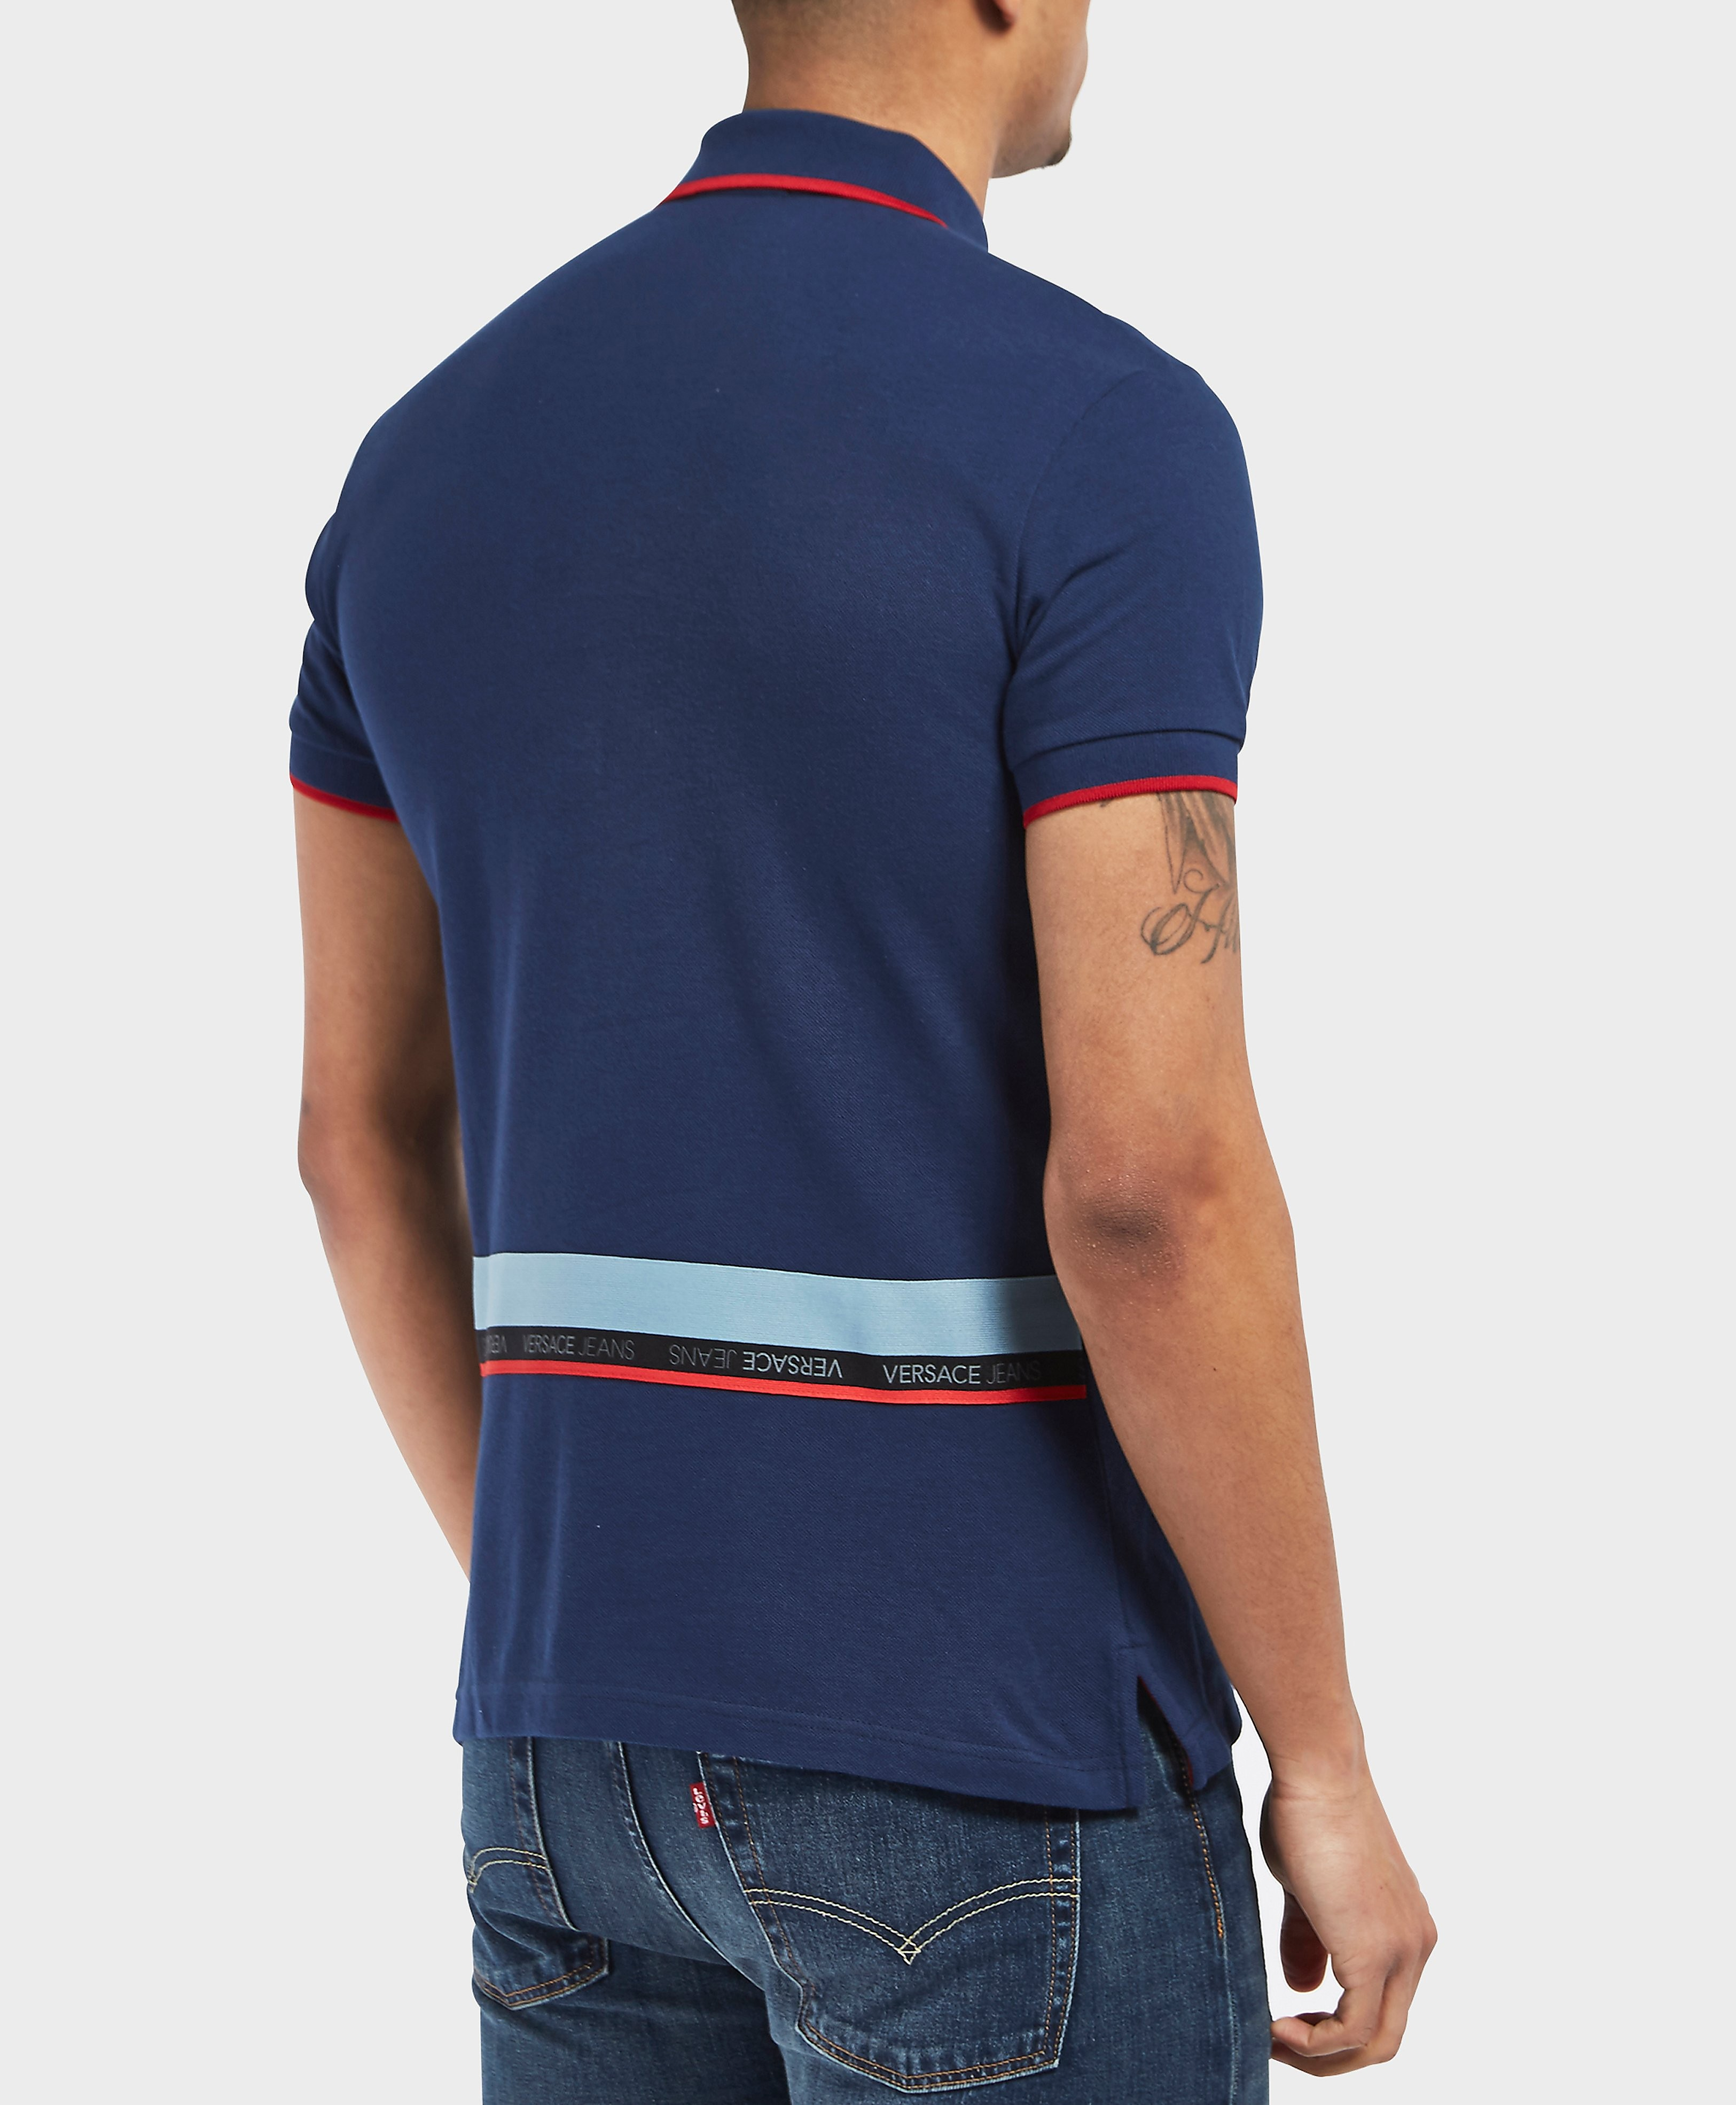 Versace Tape Tipped Short Sleeve Polo Shirt